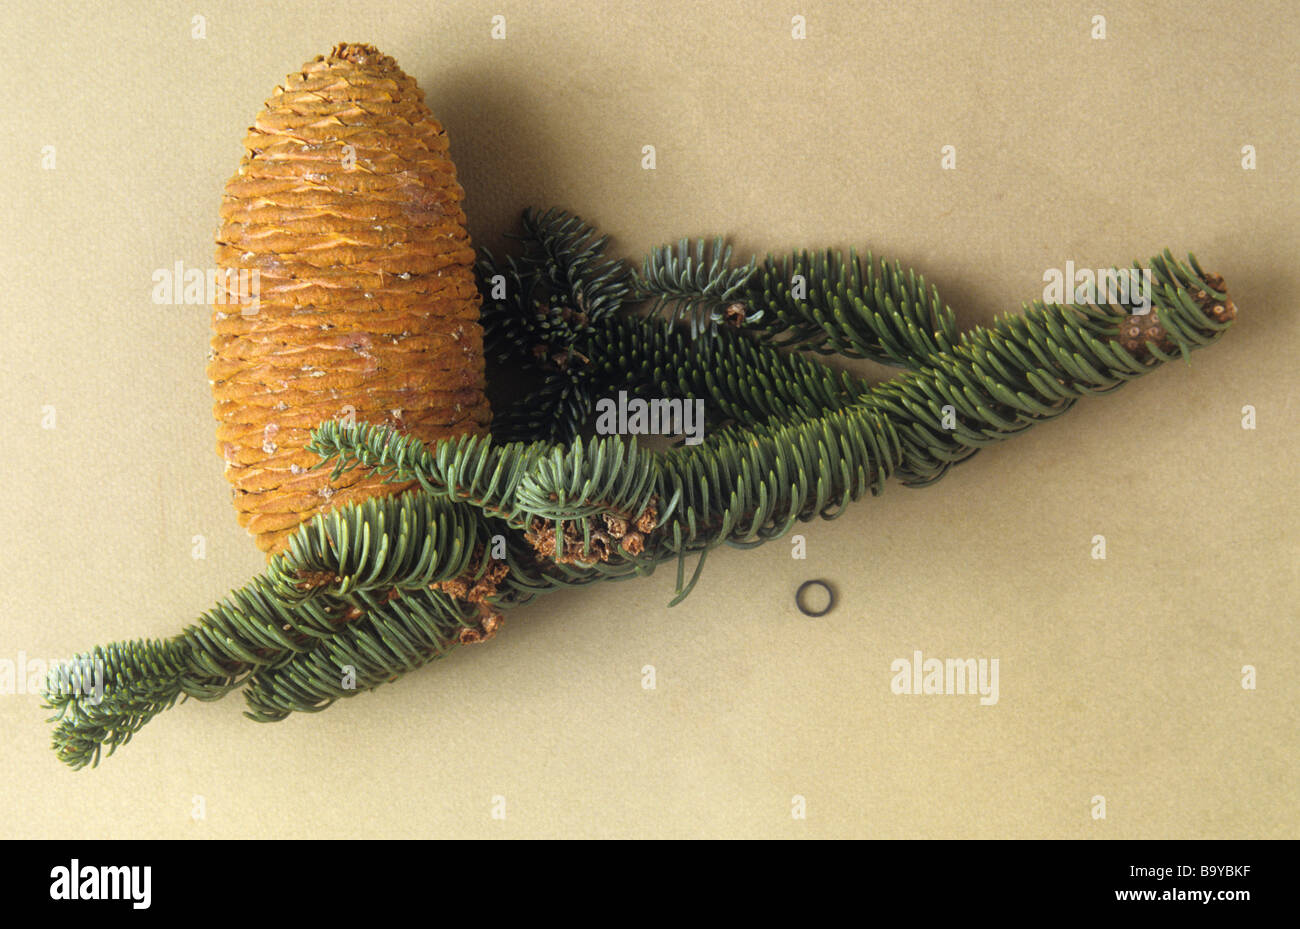 Abies magnifica (Red Fir) cone with 1 centimetre scale ring - Stock Image